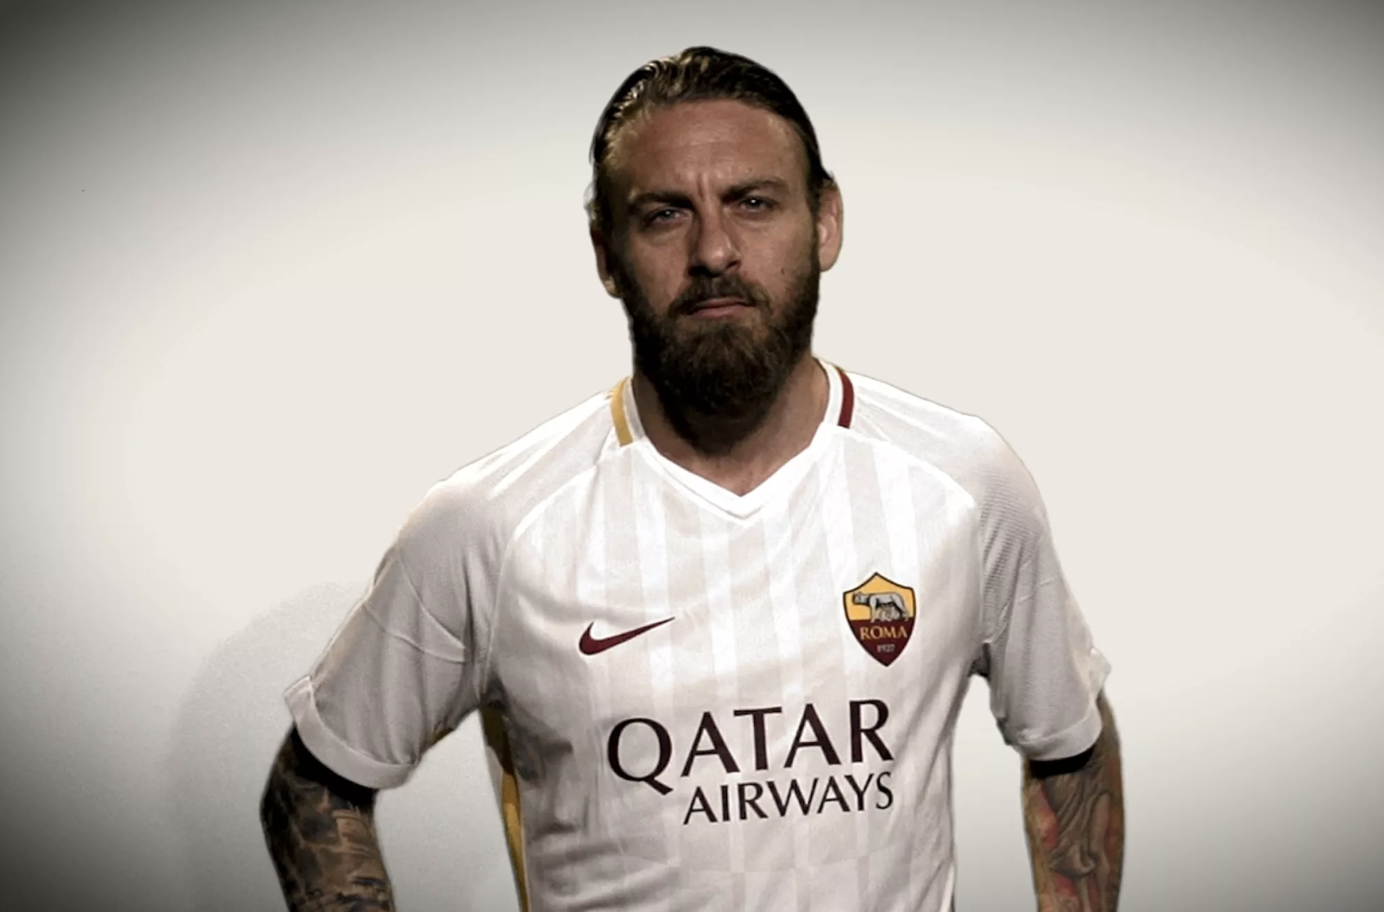 Roma debuted this kit before traveling to Anfield and getting thrashed by Liverpool in the Champions League Semi-finals.